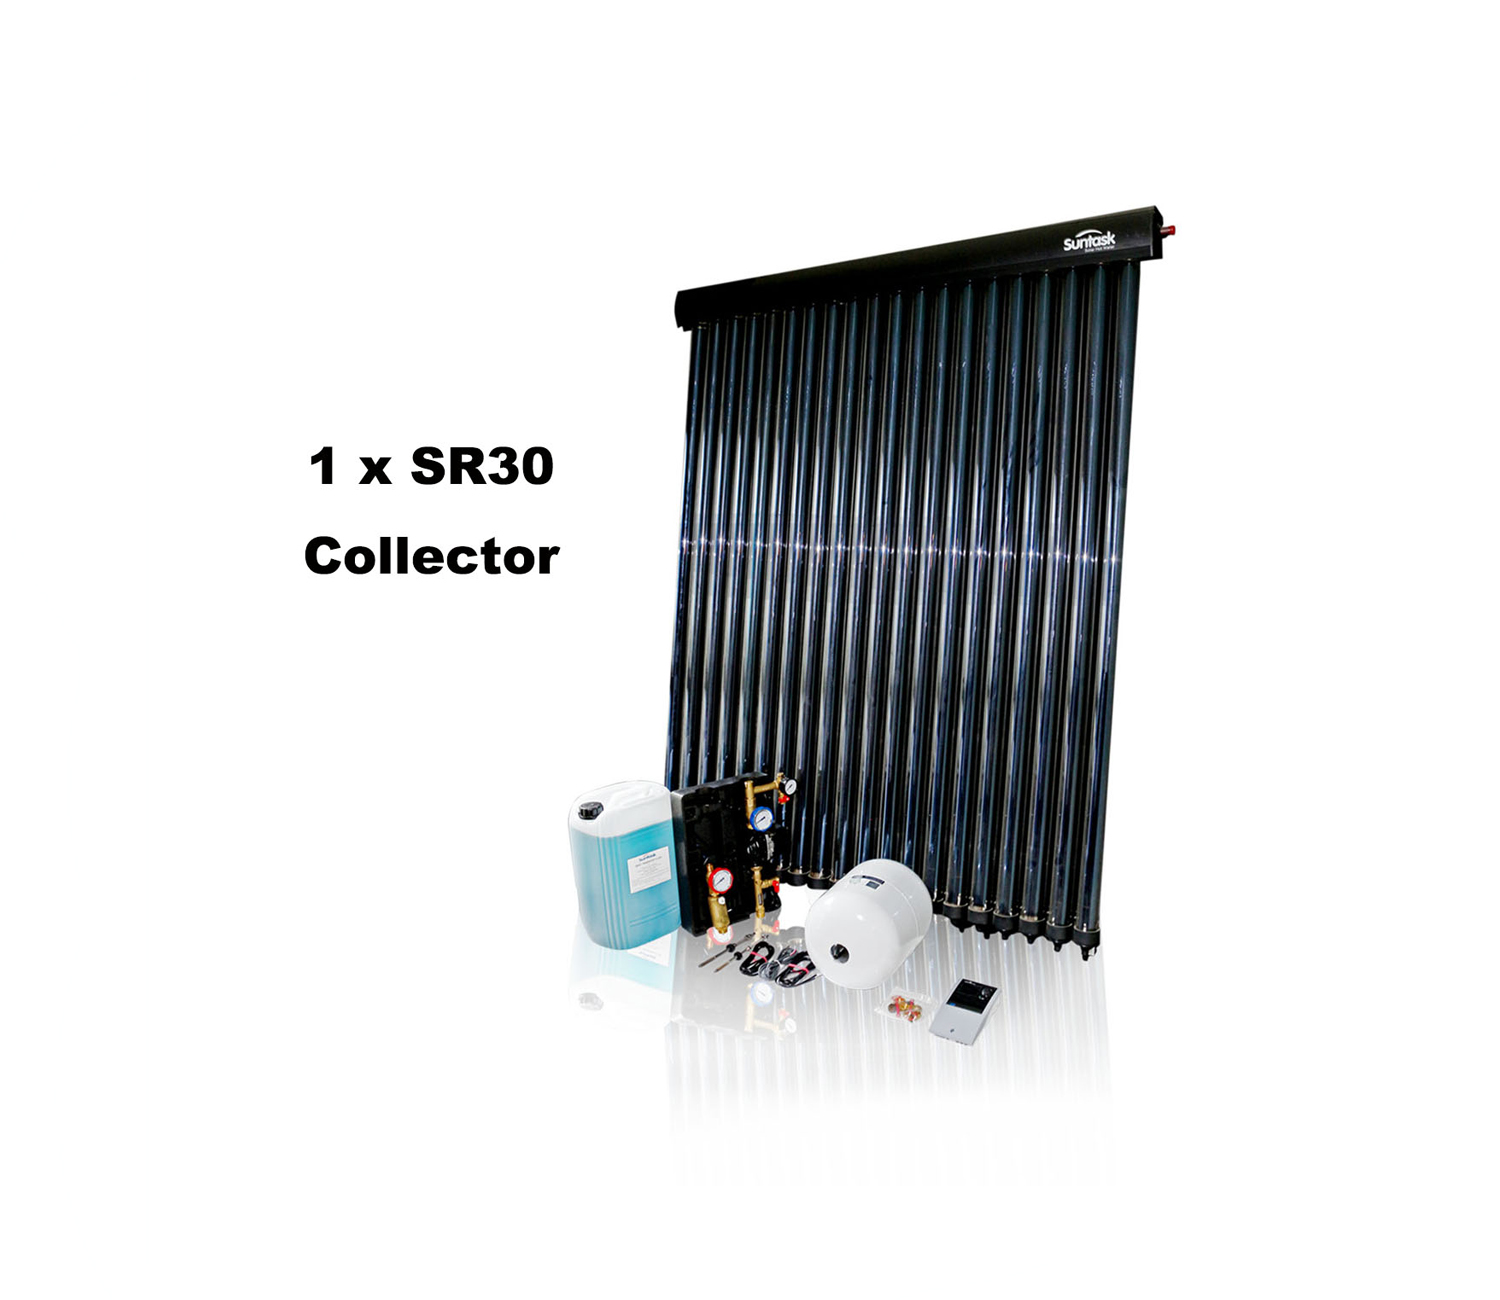 Suntask_full_Solar_Thermal_Kits_excluding_Cylinders_30_Tube_System_(1 x SR30_Collector).jpg